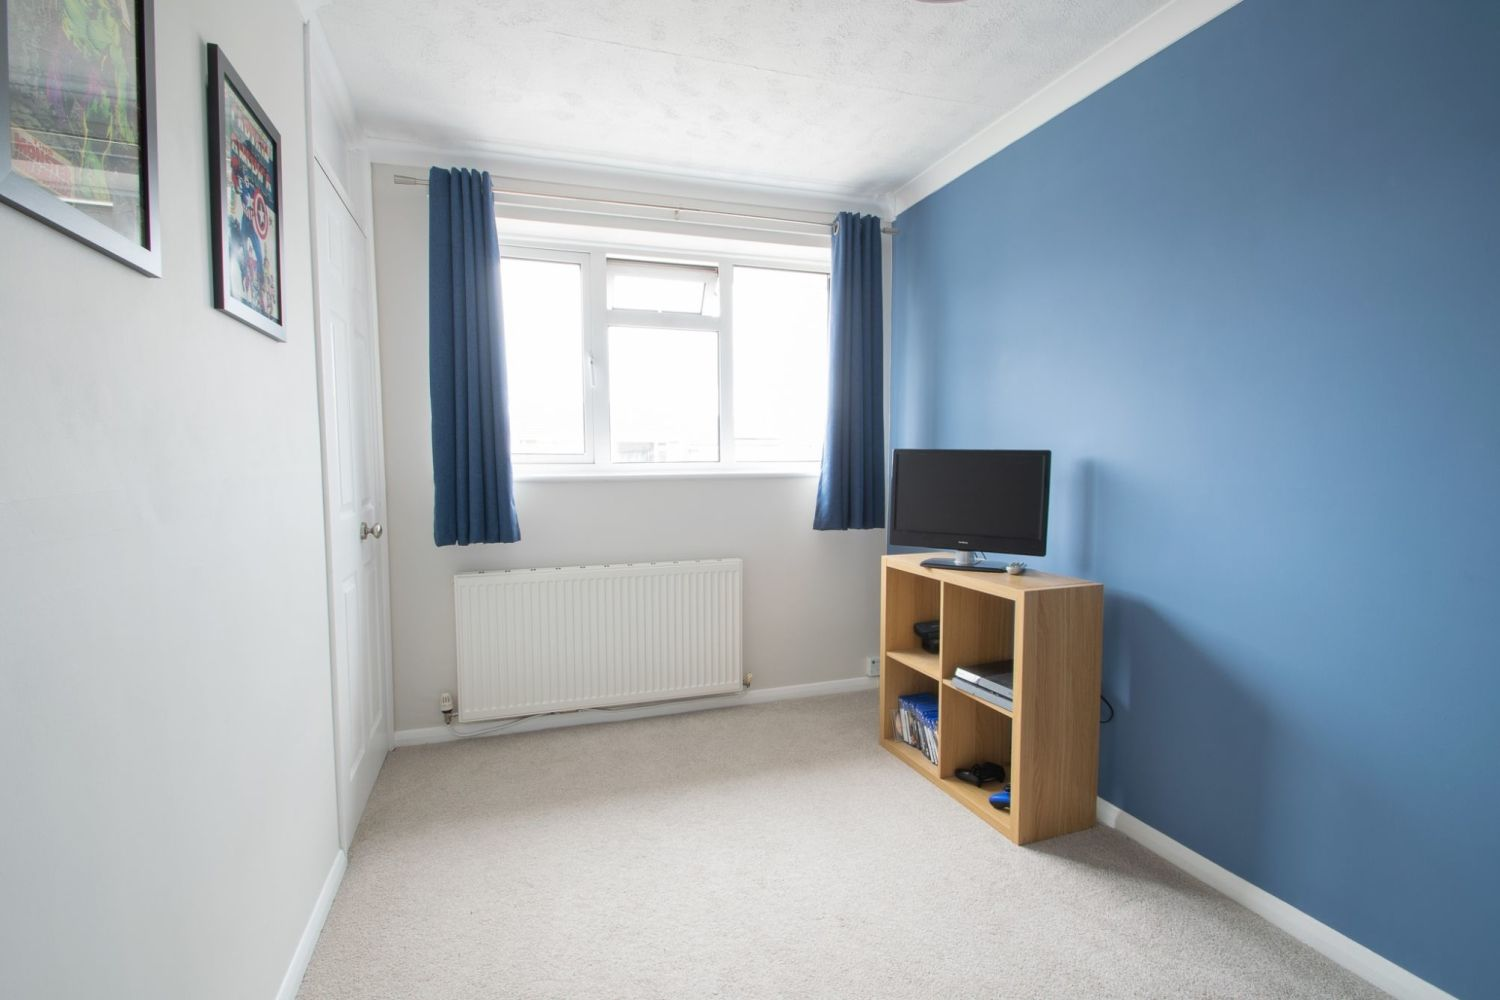 3 bed detached for sale in Clyde Avenue, Halesowen  - Property Image 16